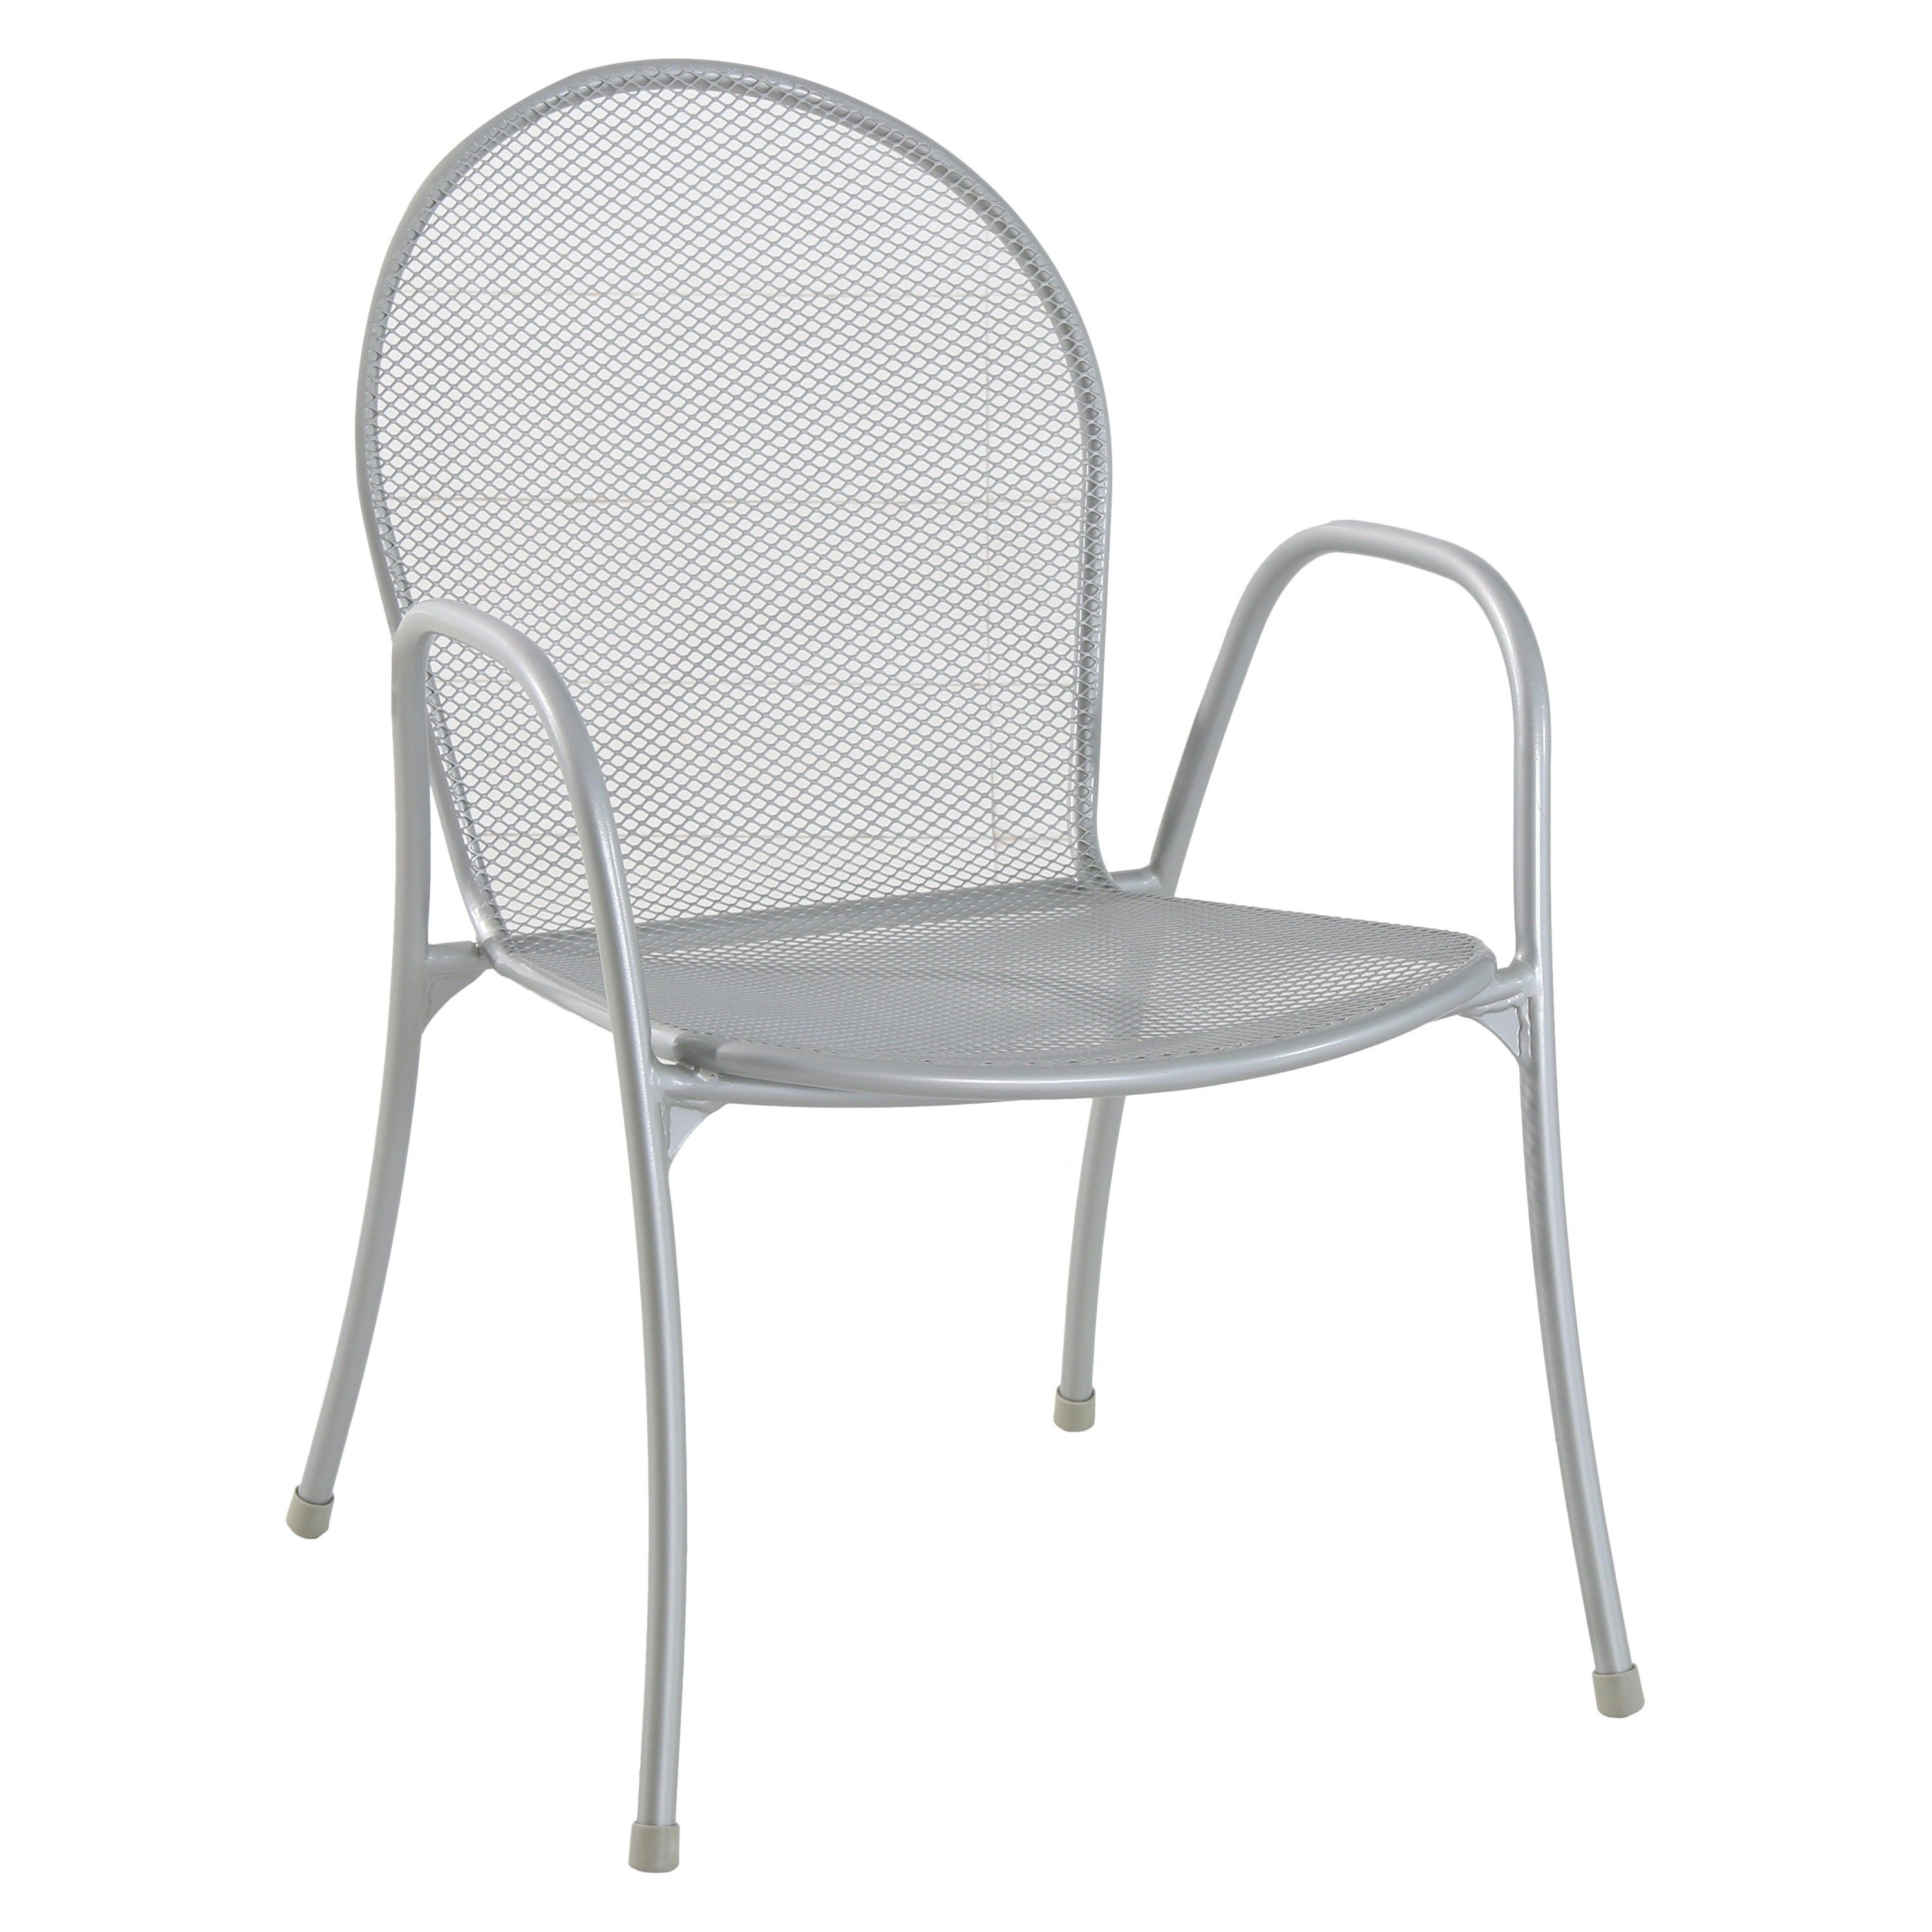 Silver Metal Dining Chairs Rustic For Sale The Carmack Mesh Patio Chair From Threshold